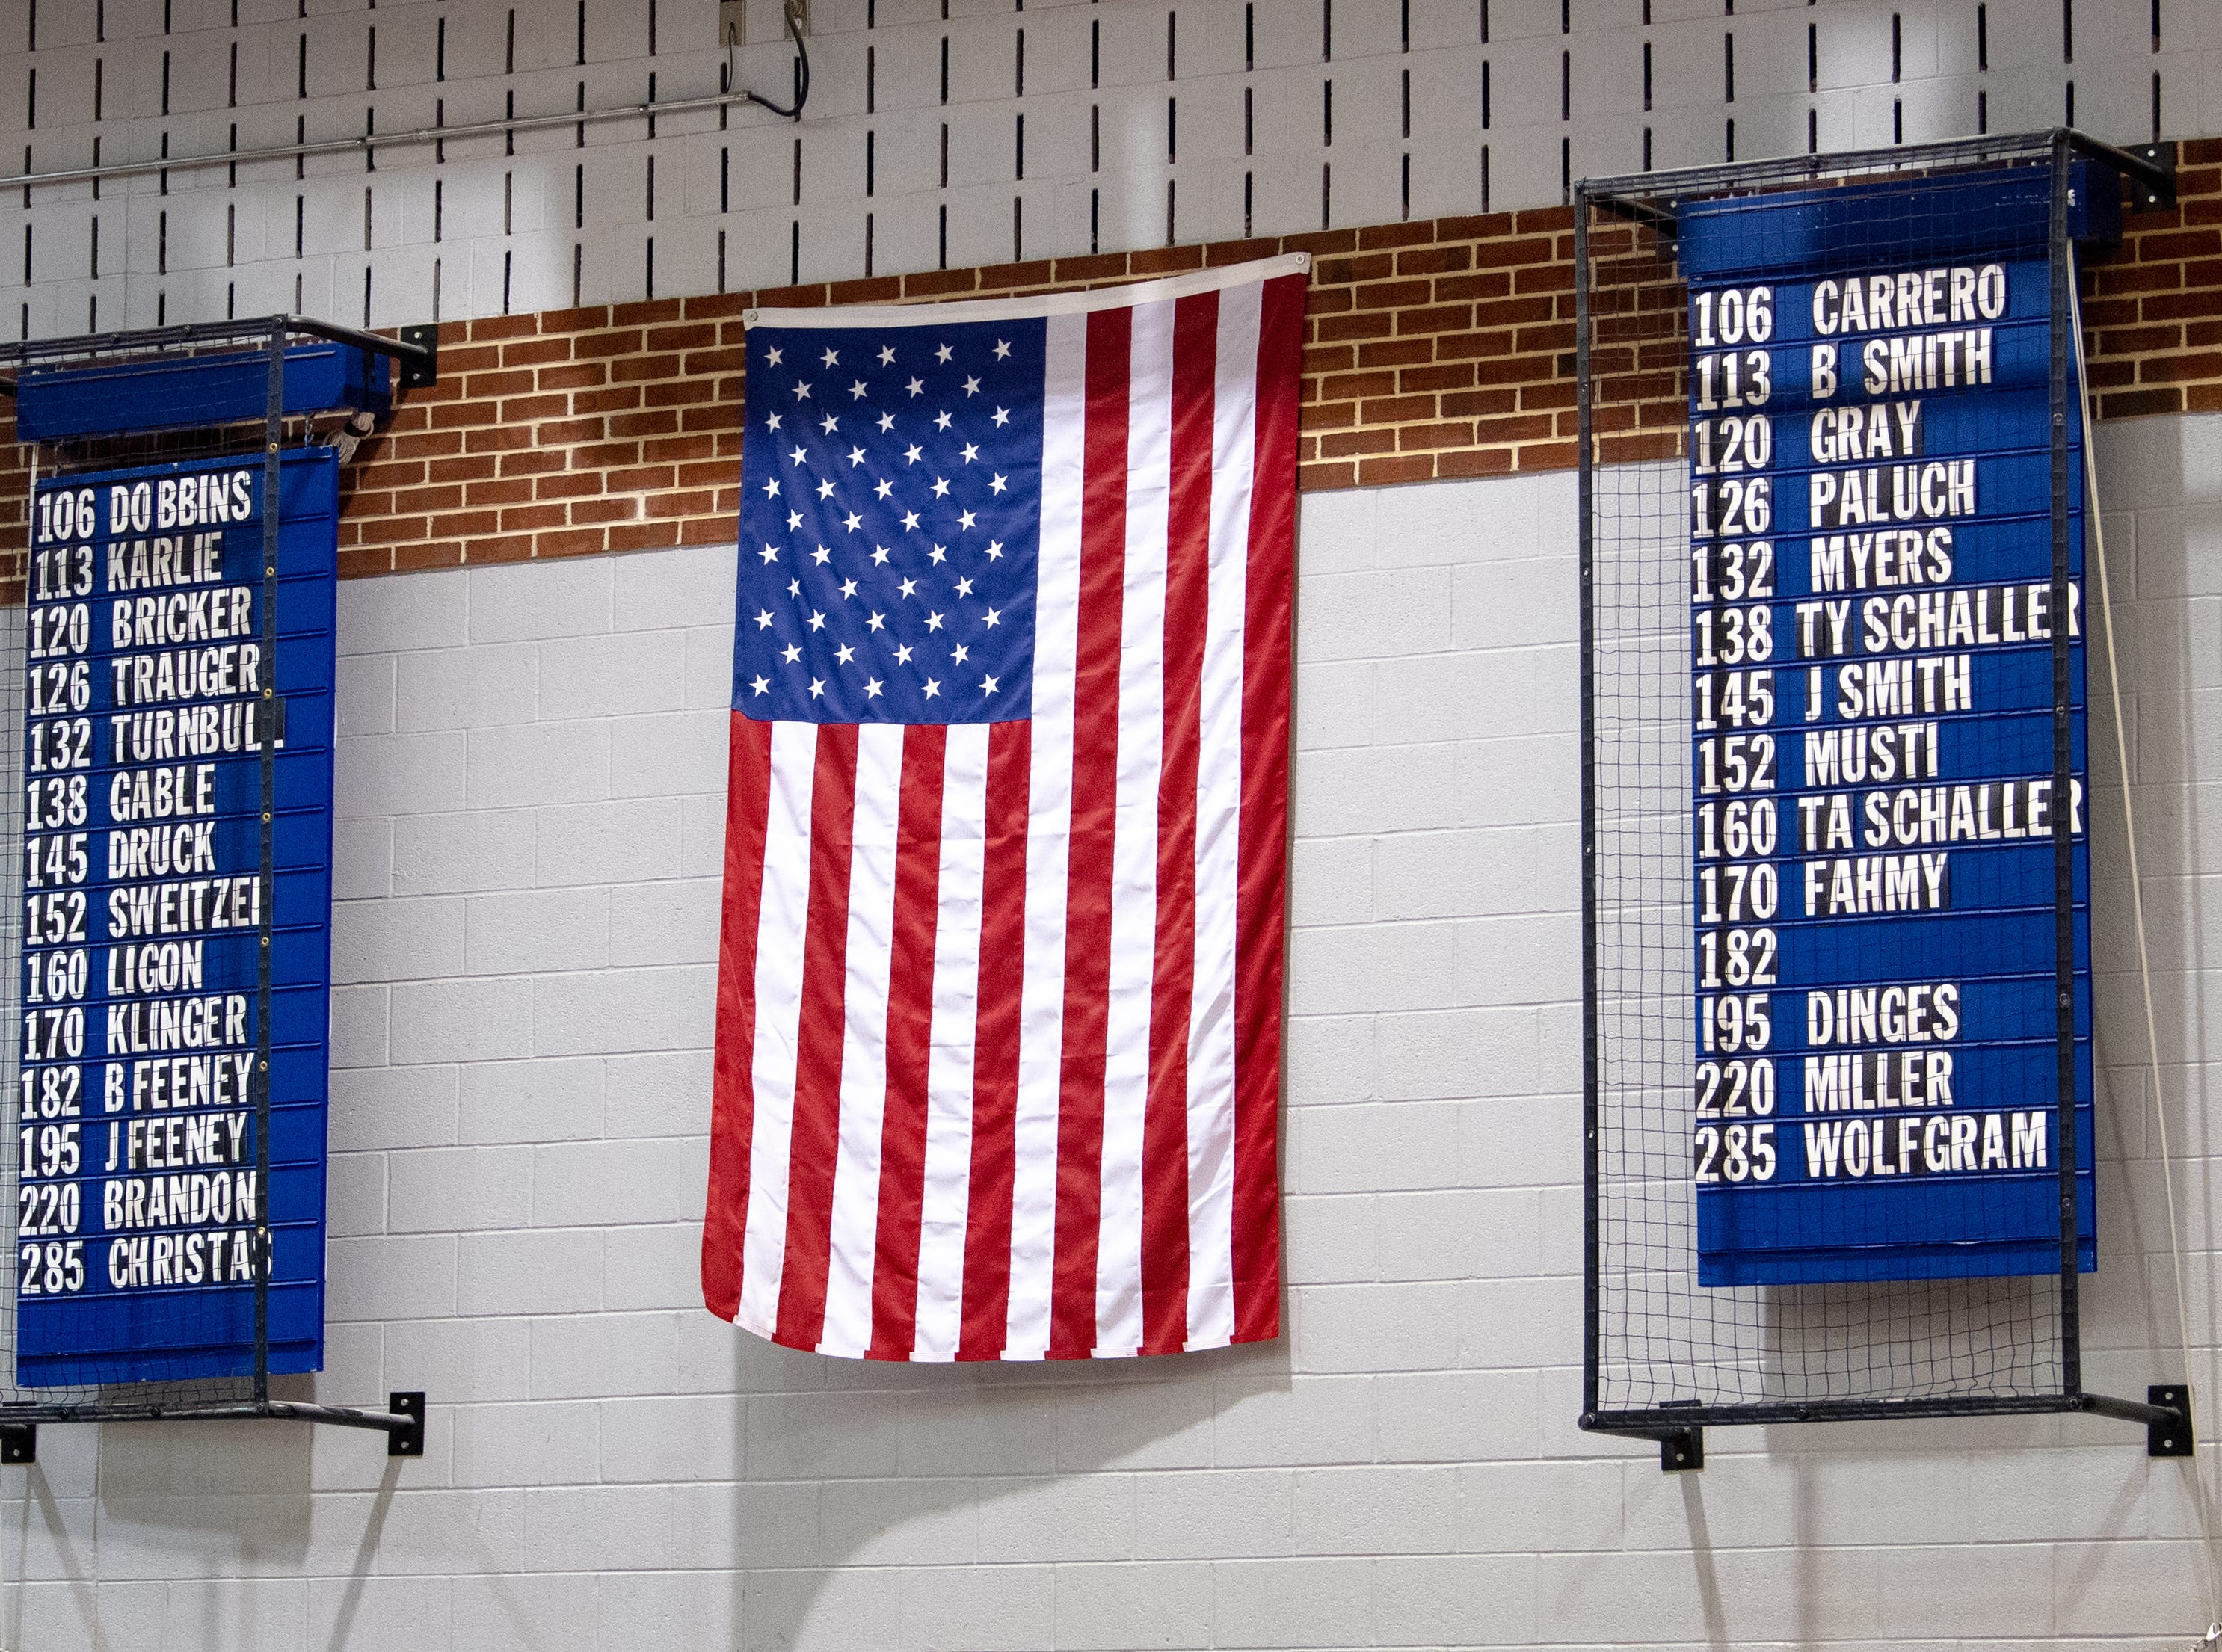 Dallastown and Central York have the names on the wall of the athletes that will be going head to head in the match, Thursday, January 3, 2019. The Wildcats defeated the Panthers 62-18.